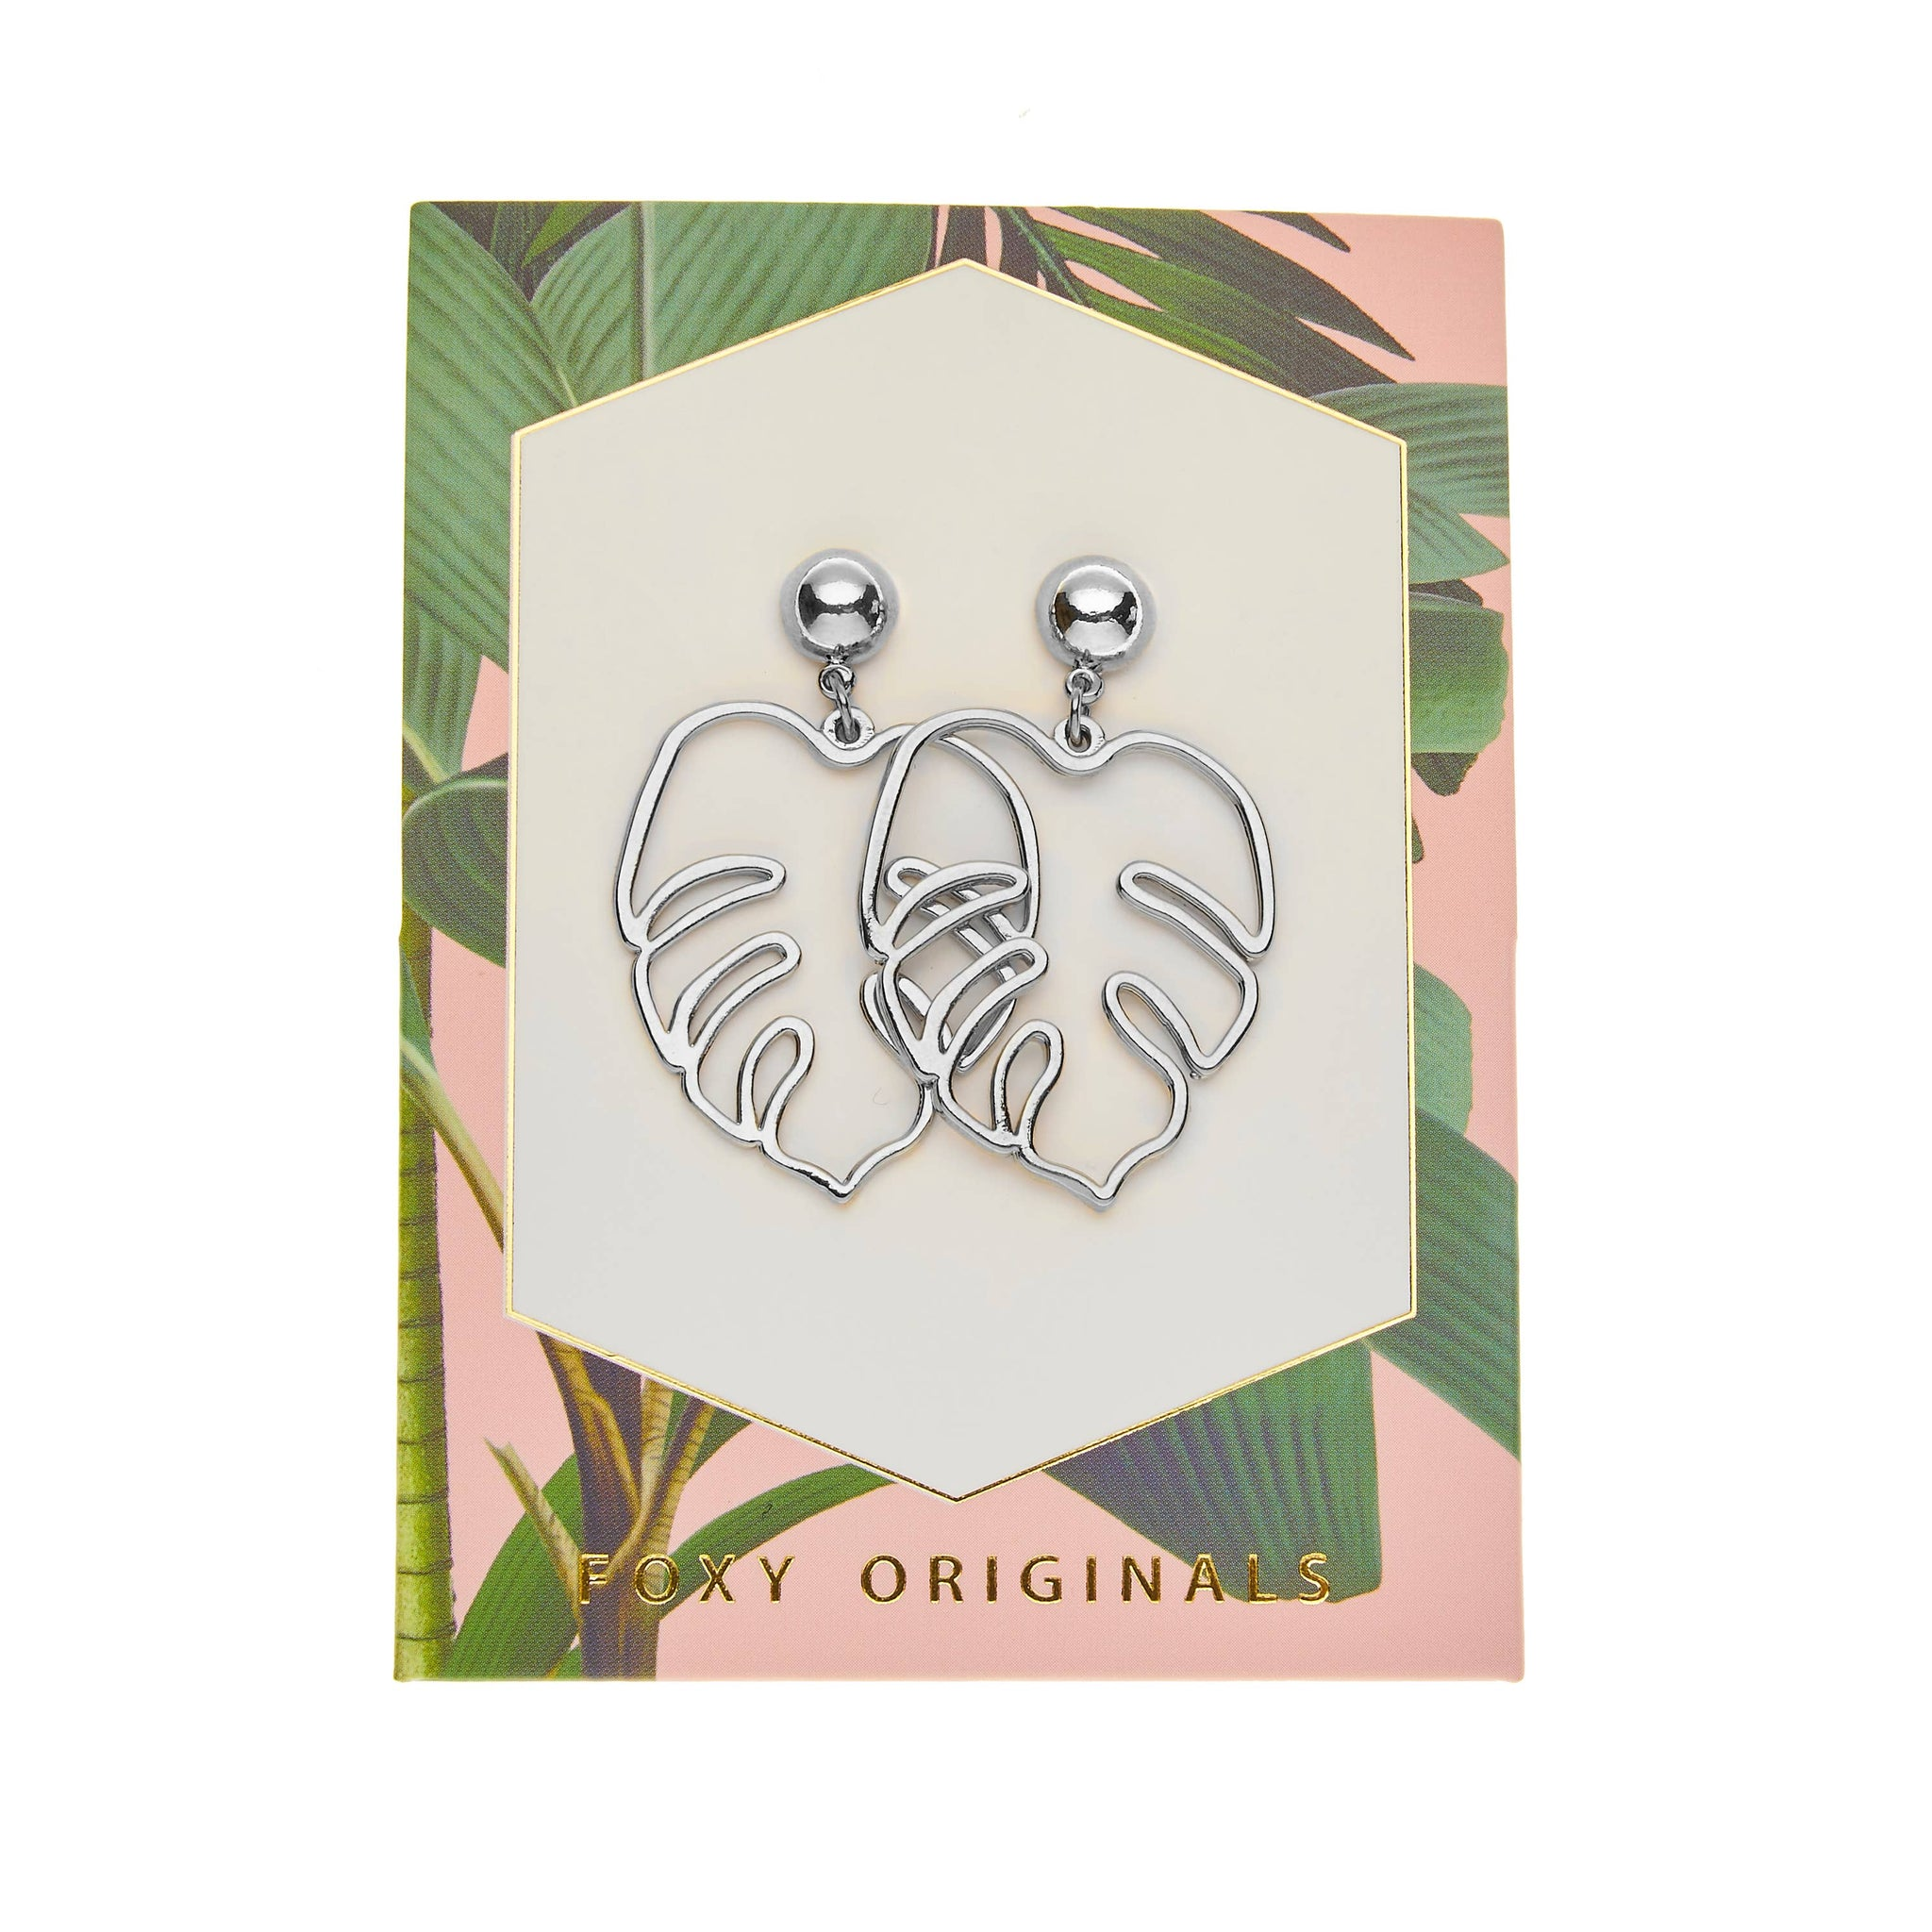 Foxy Originals Lush Statement Earrings | plated in 14 karat silver | palm leaf earrings | stud earrings | bloom boutique